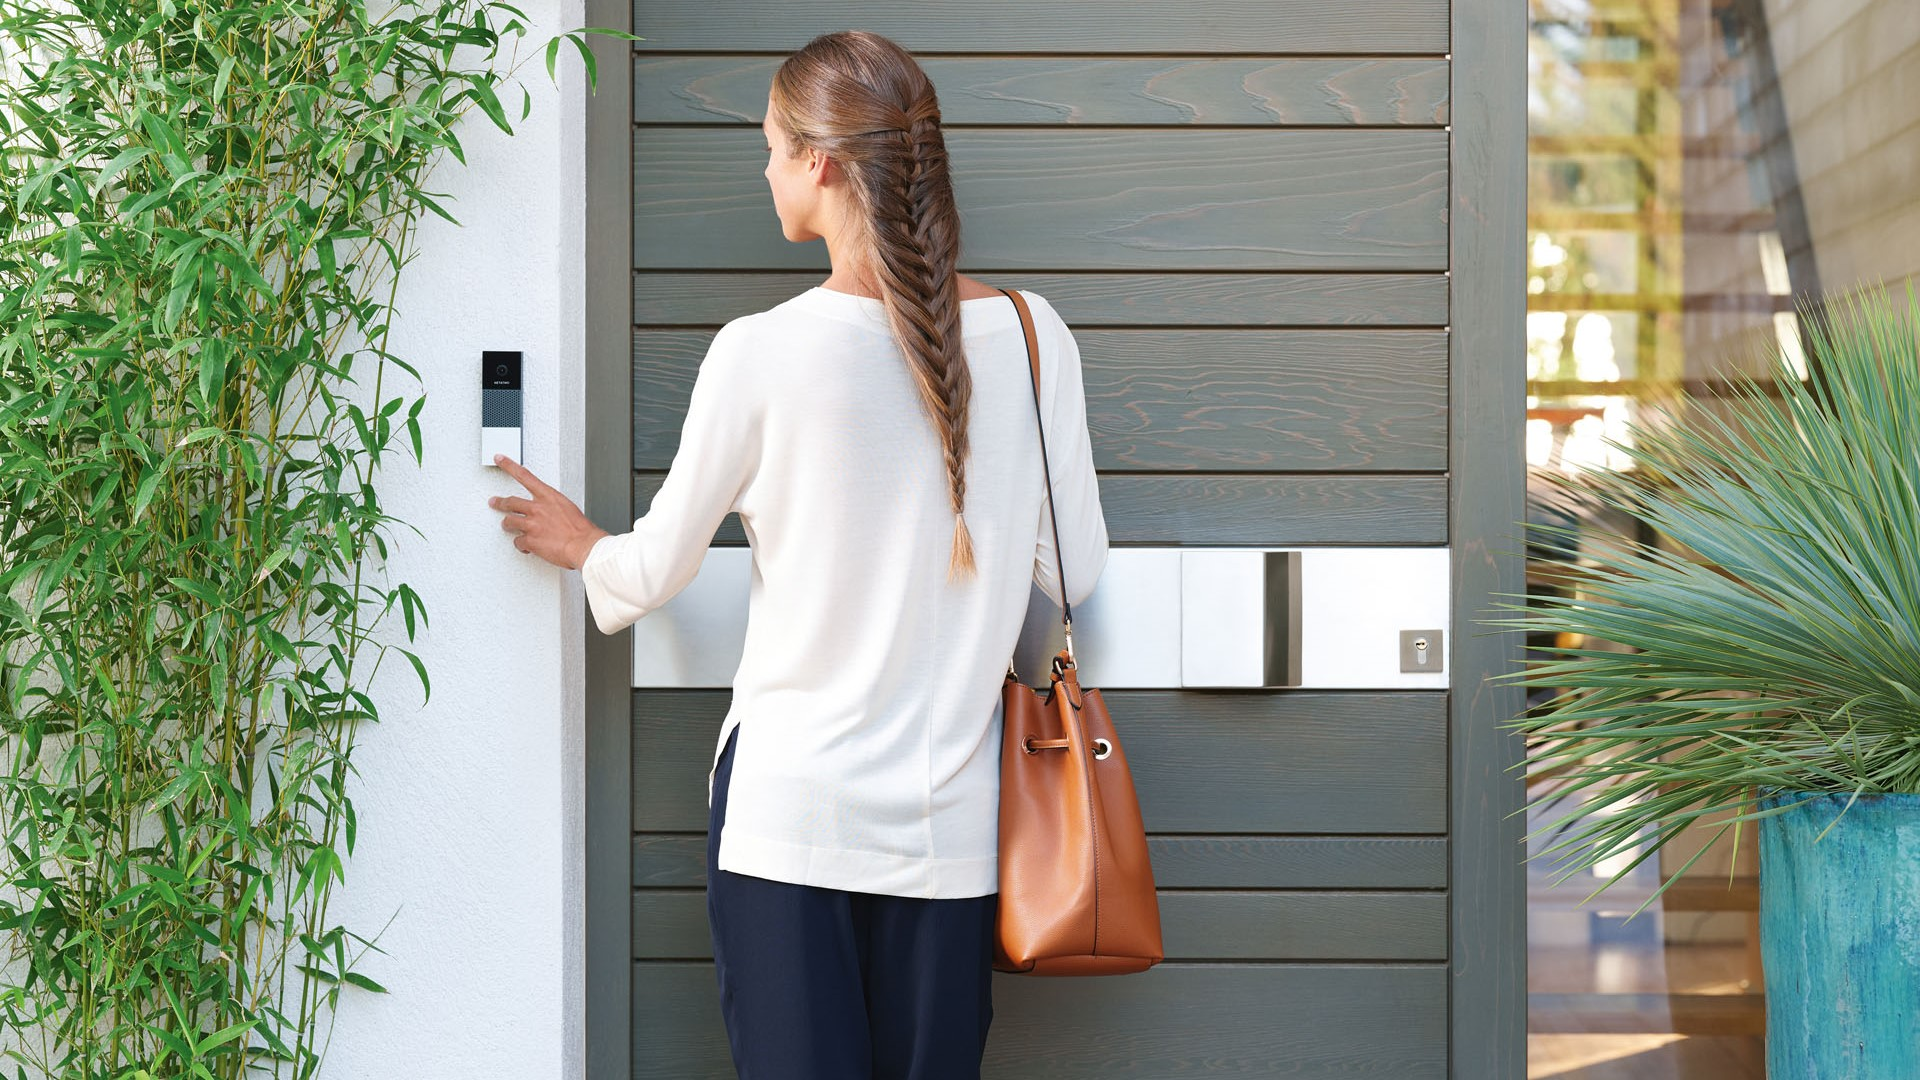 Smart Doorbells and Video Intercoms